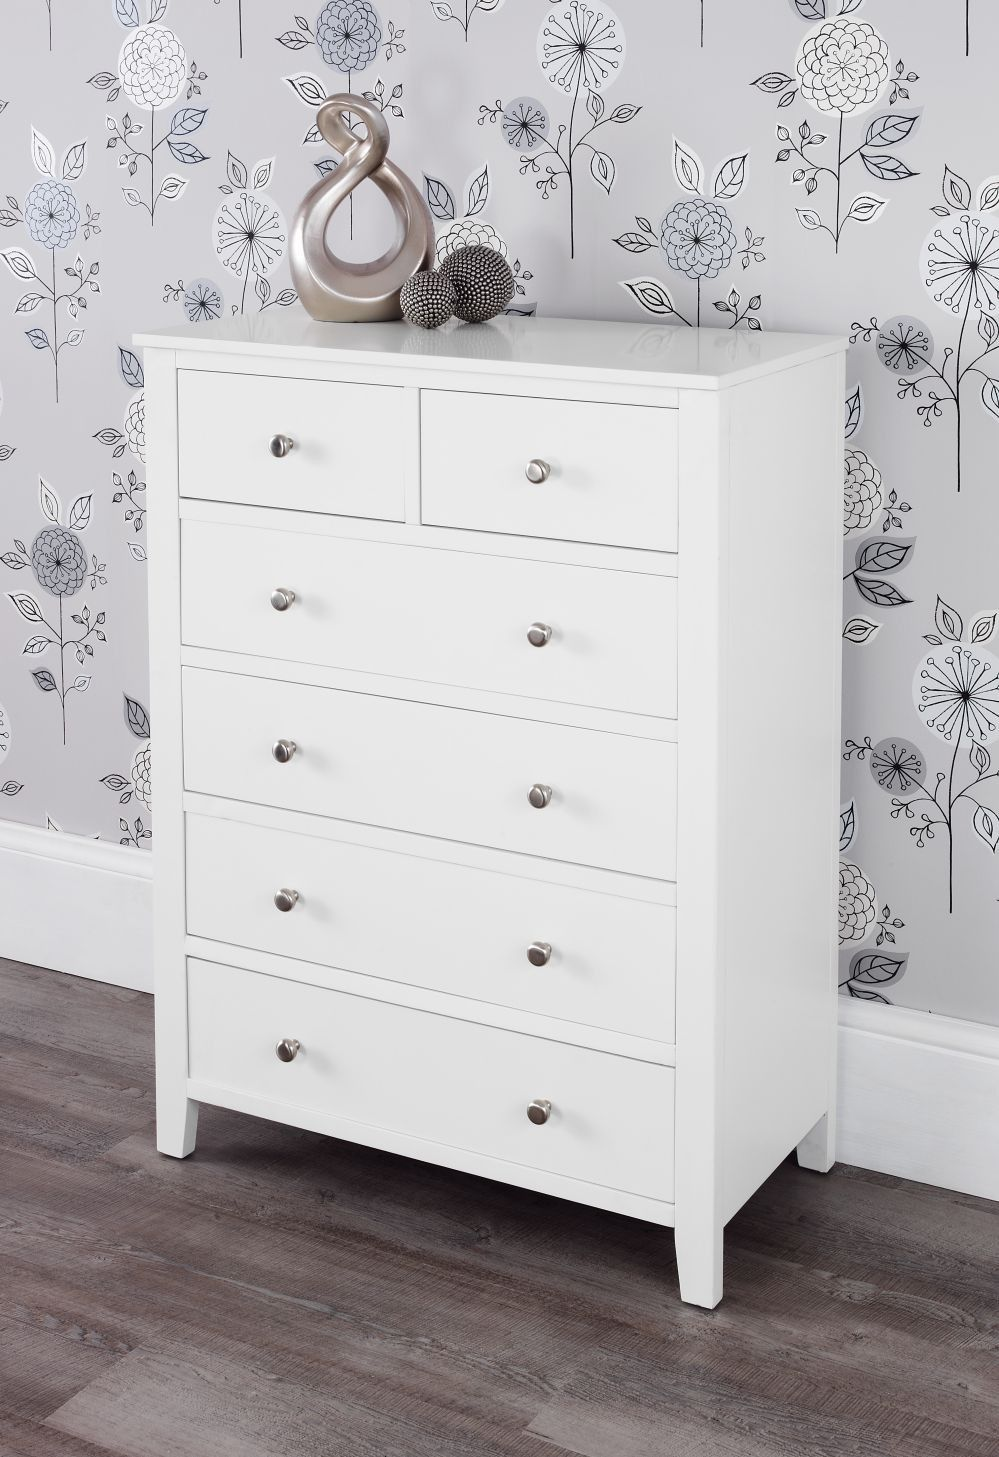 Brooklyn white chest of drawers | Declans bedroom | Pinterest ...